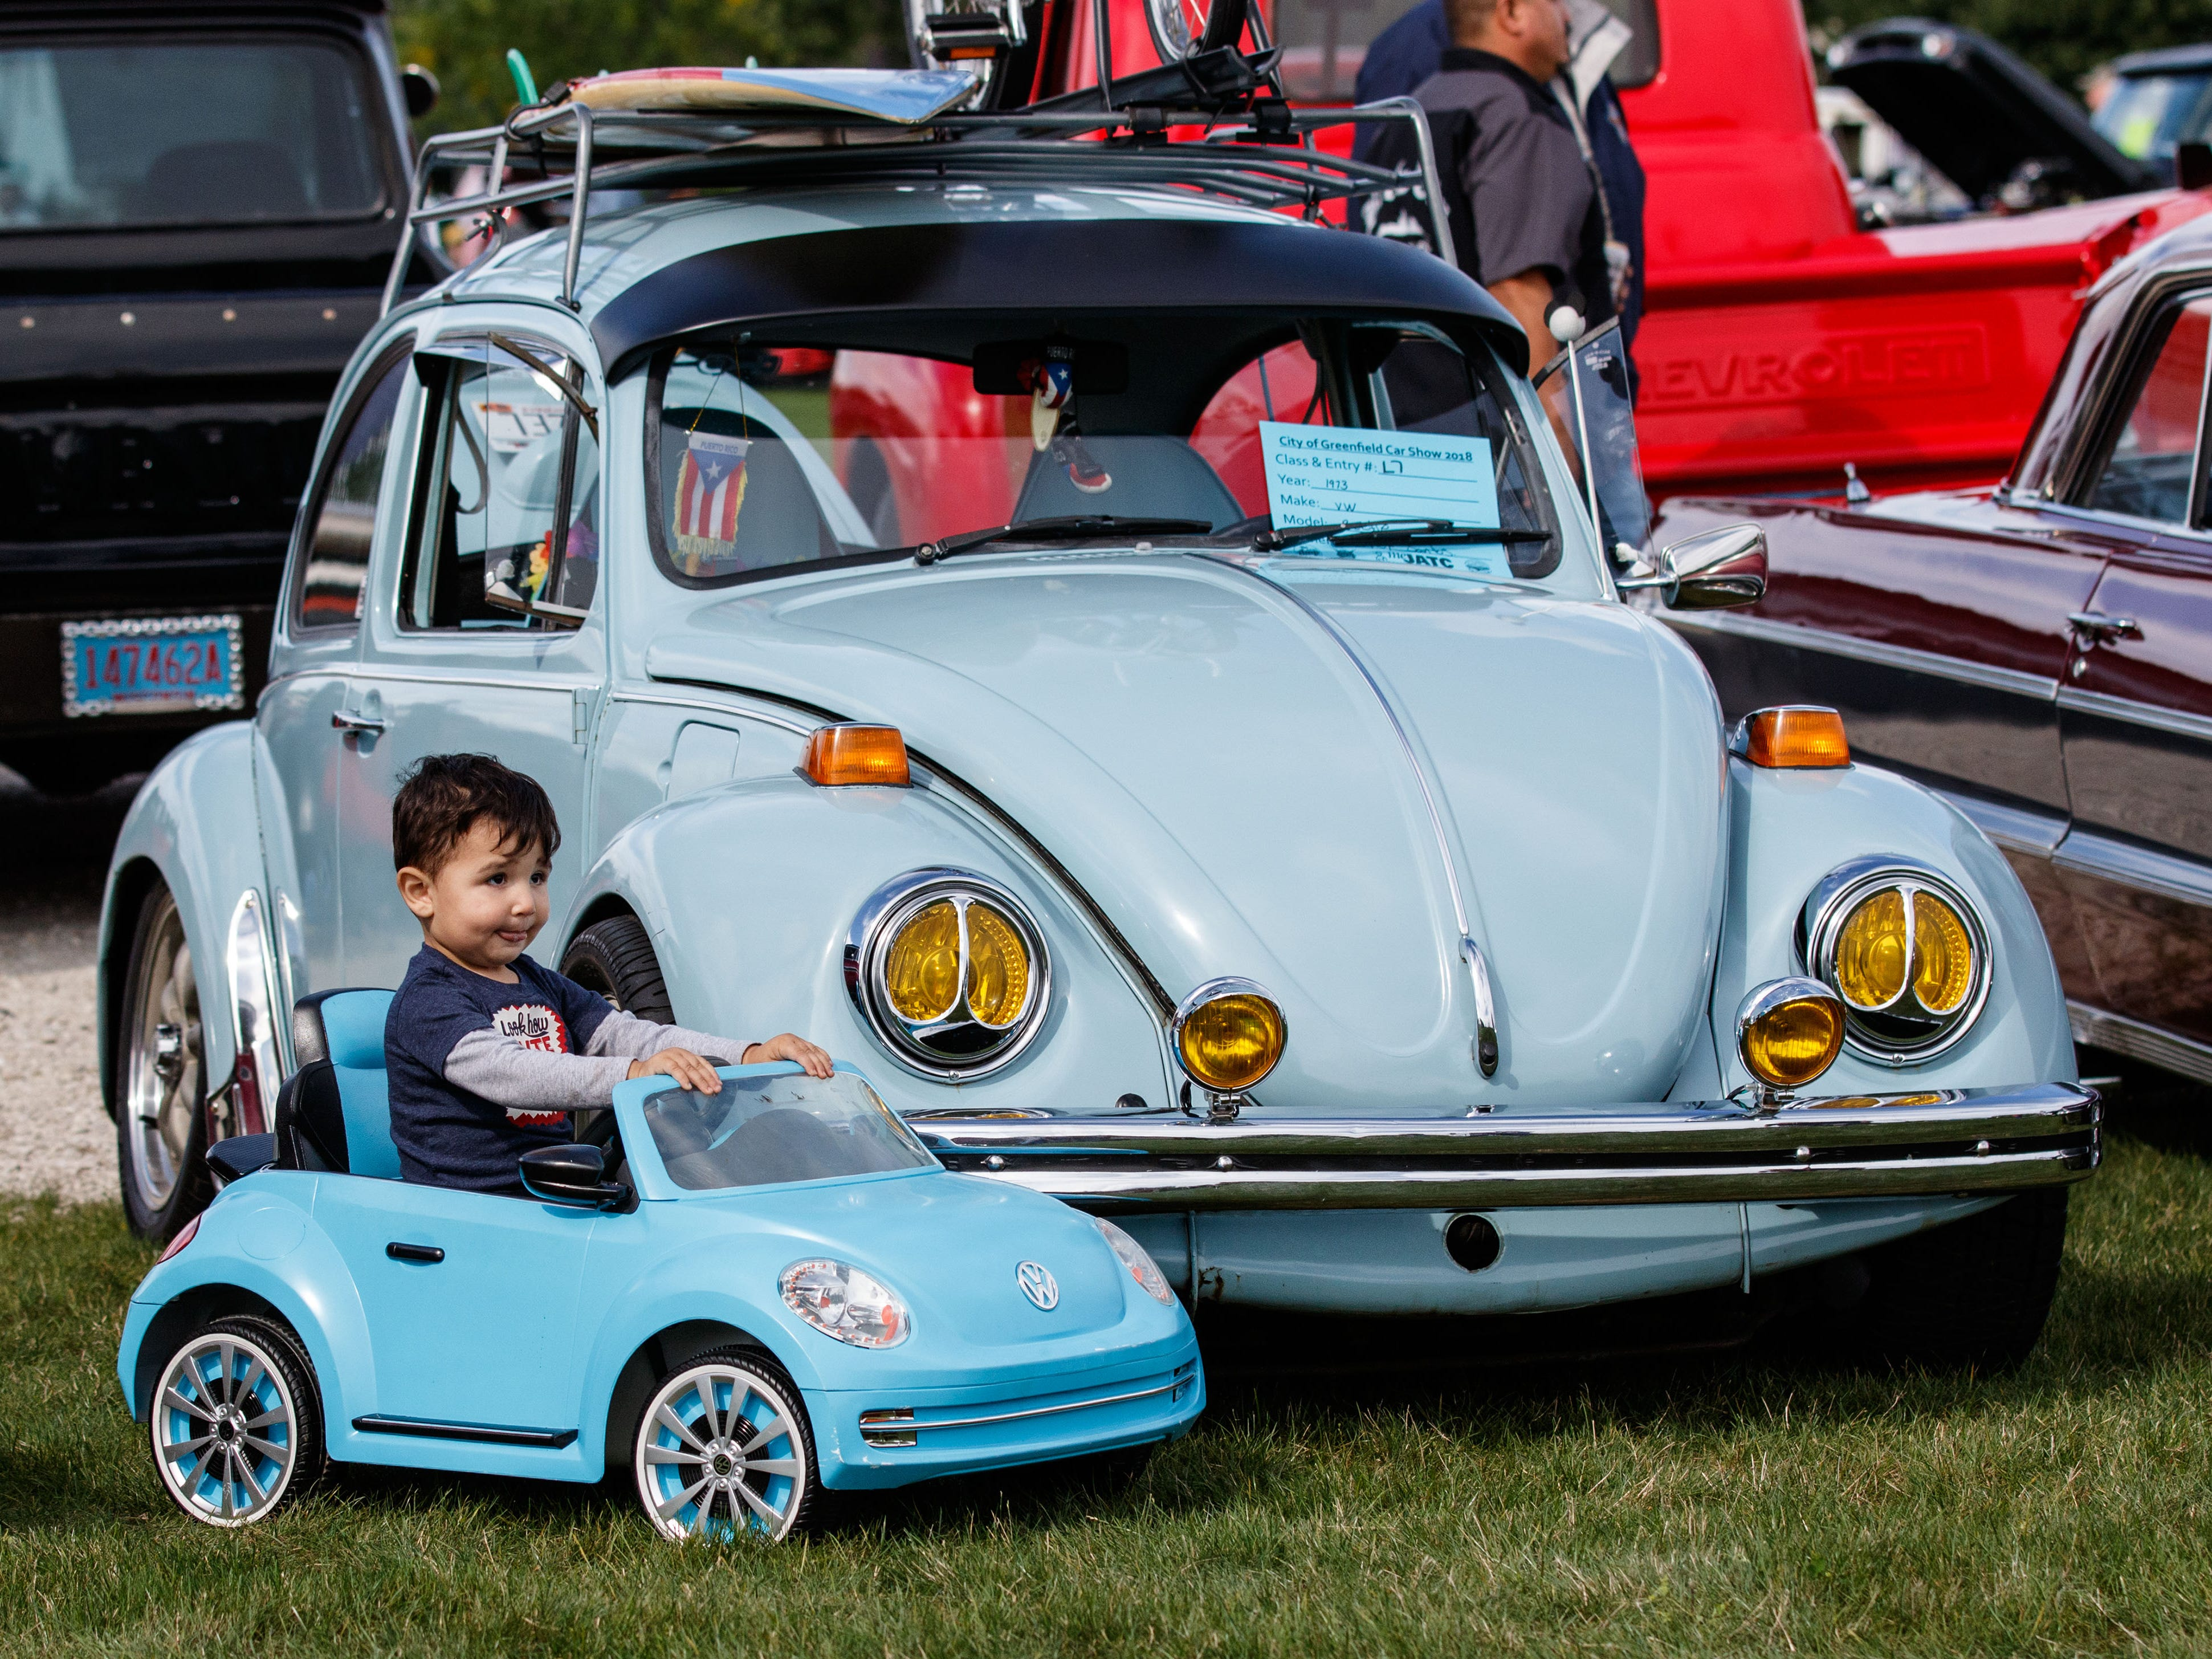 Two-year-old Kristian Santos of Milwaukee shows off his miniature VW alongside his father's original 1973 Beetle during the City of Greenfield's 2nd annual Car Show in Konkel Park on Saturday, Sept. 8, 2018.